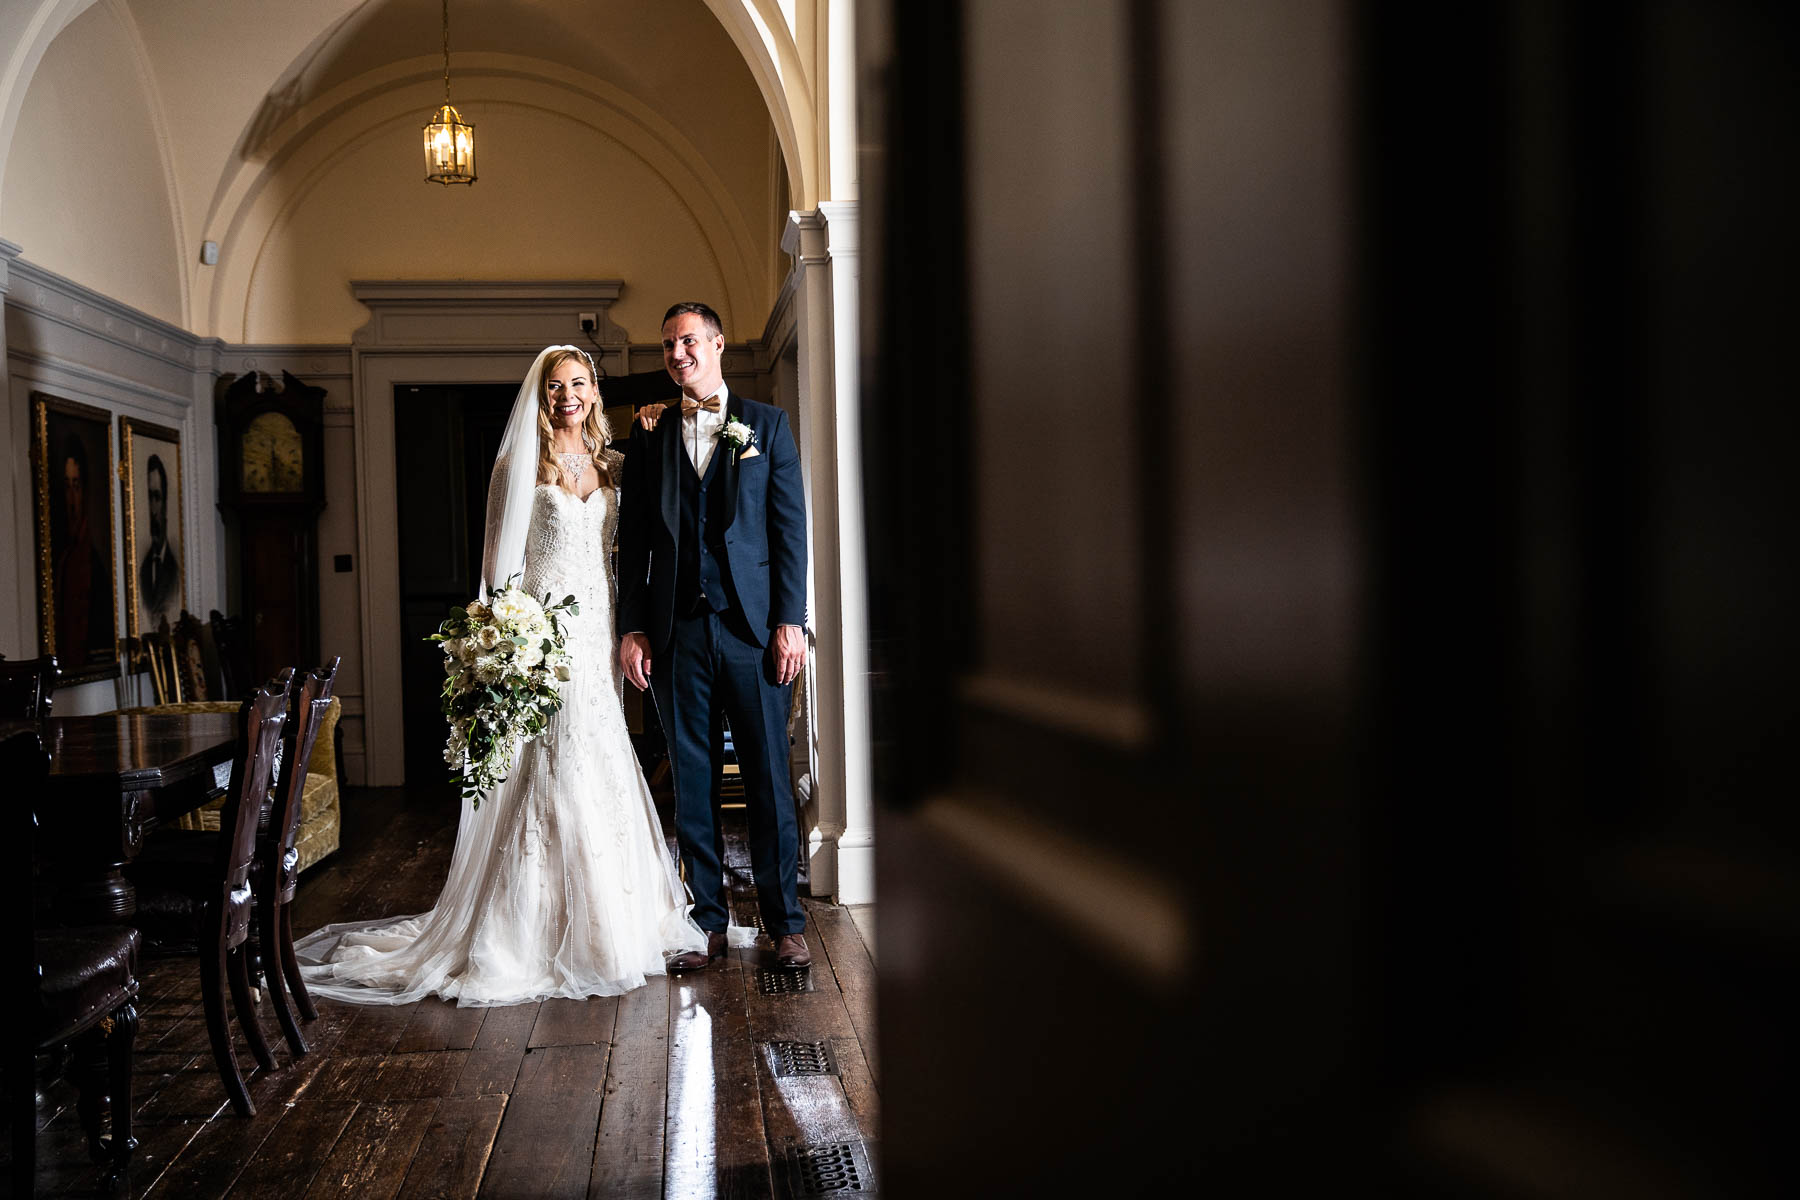 Beautiful wedding photos at Delapre Abbey